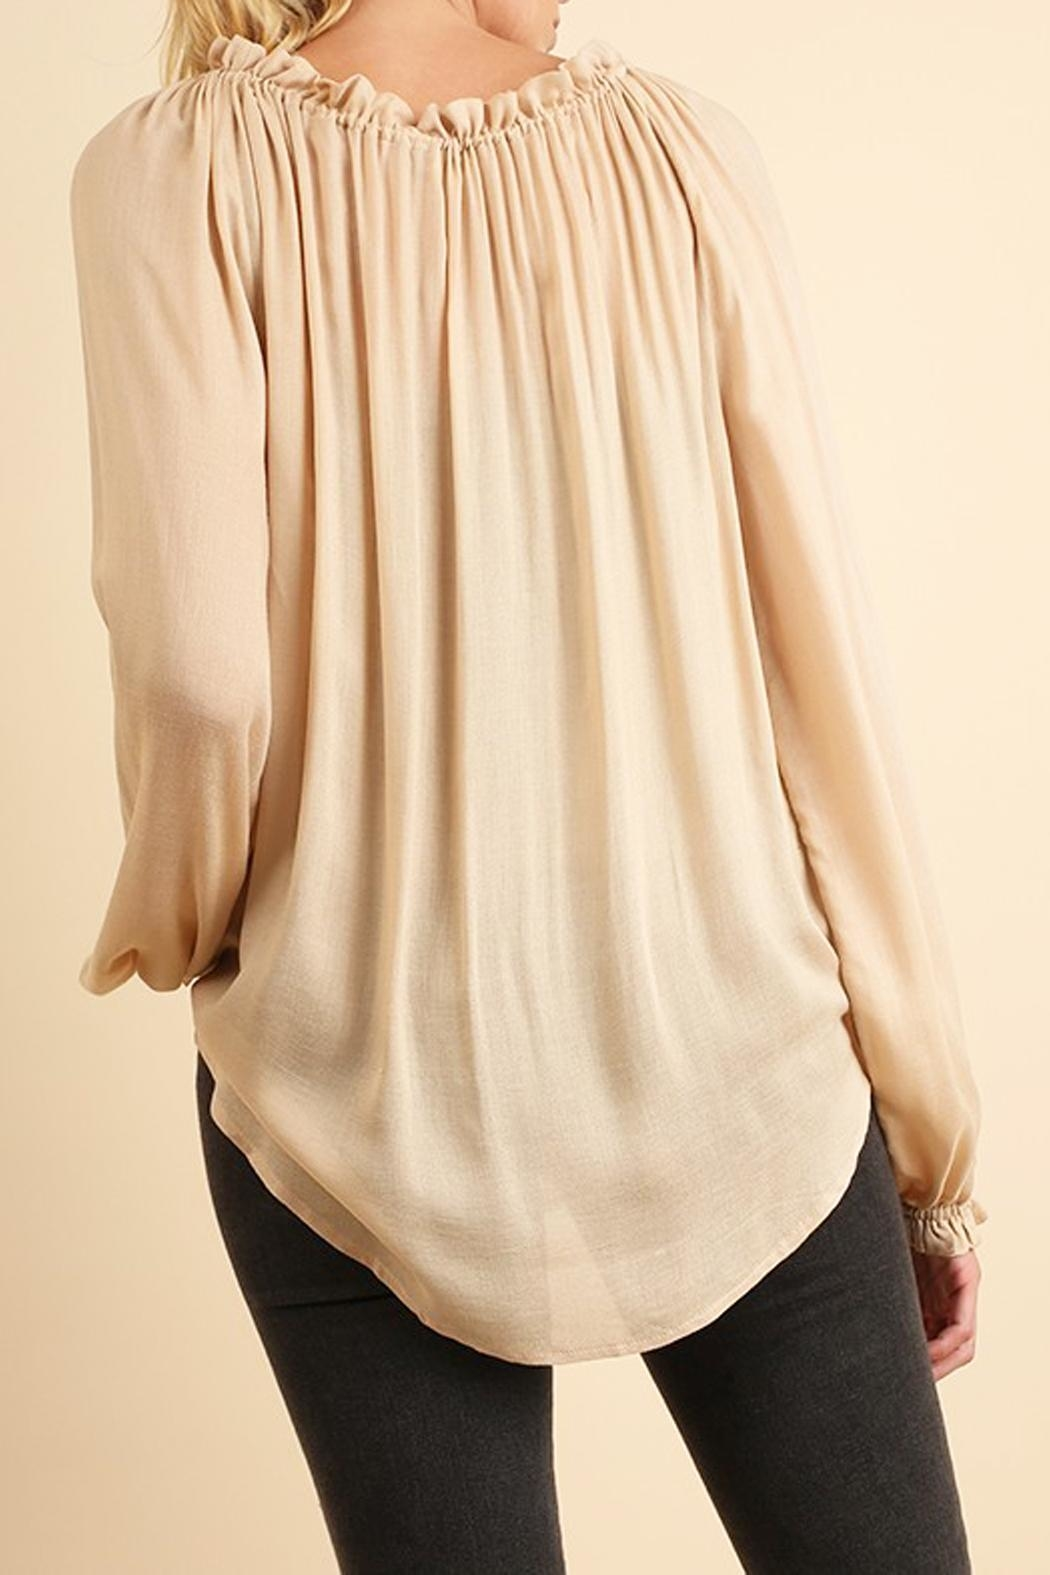 Umgee USA Cream Silky-Feel Blouse - Front Full Image